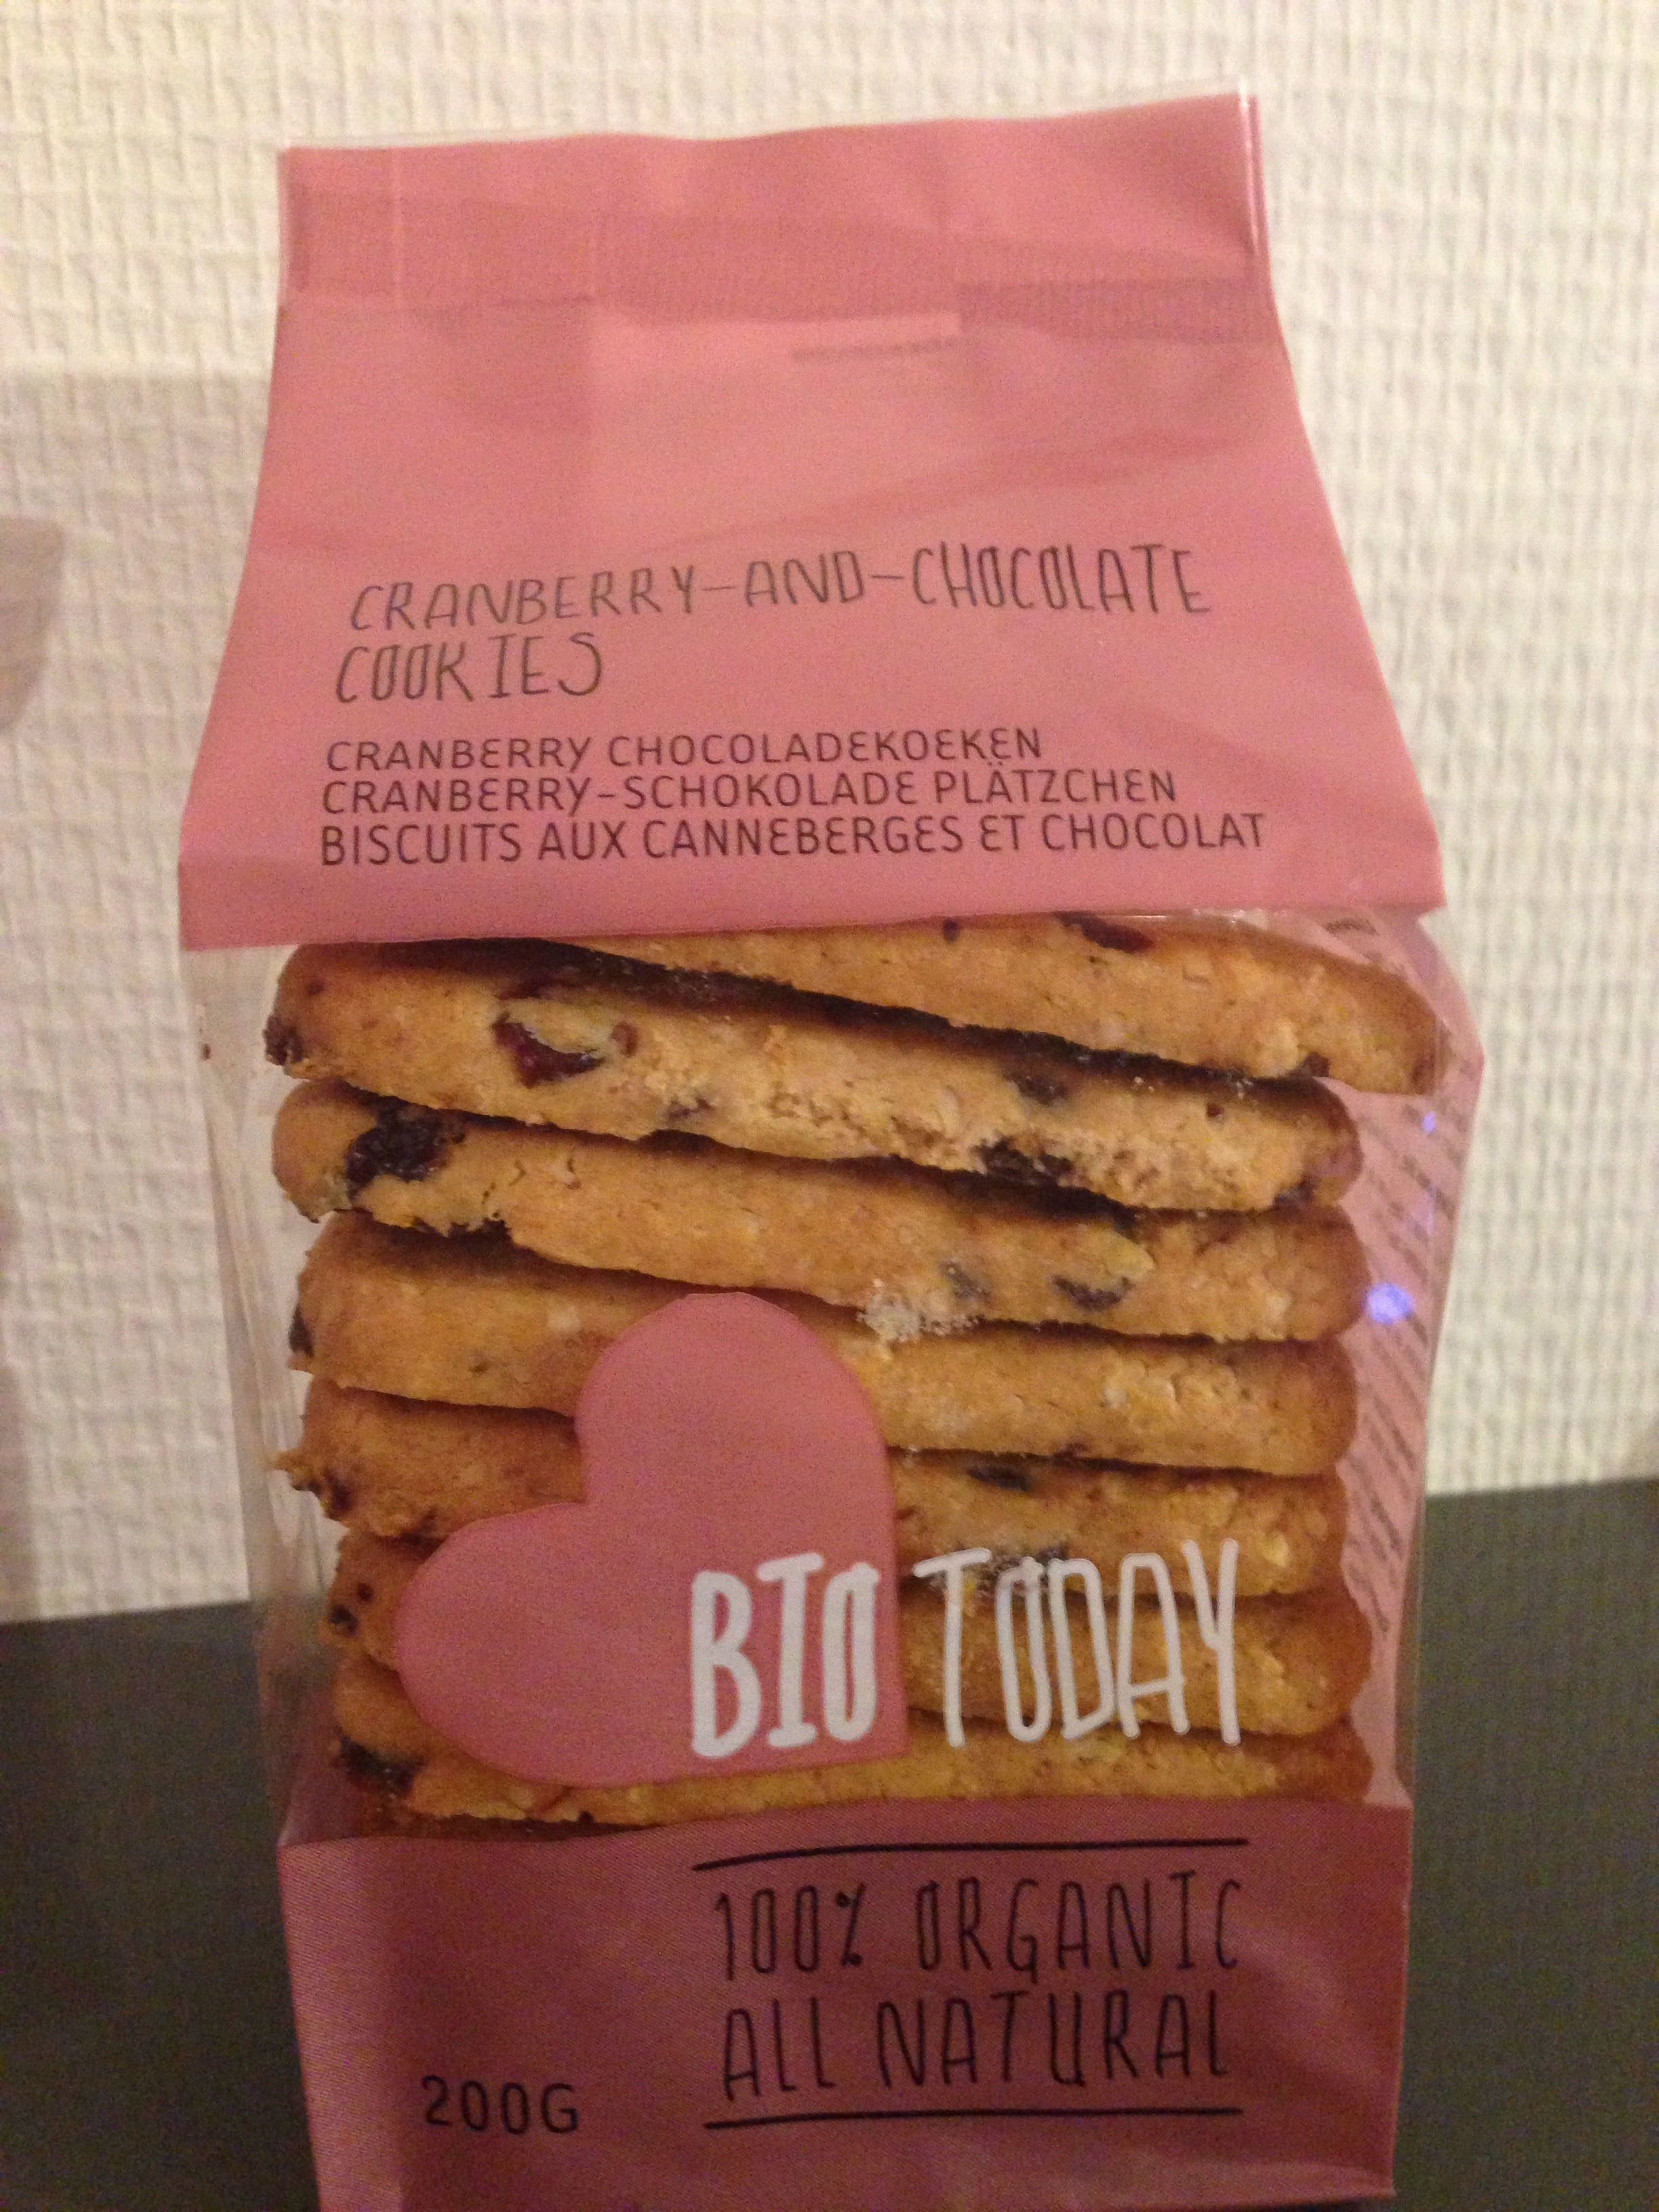 Cranberry-and-chocolate-cookies - Product - fr